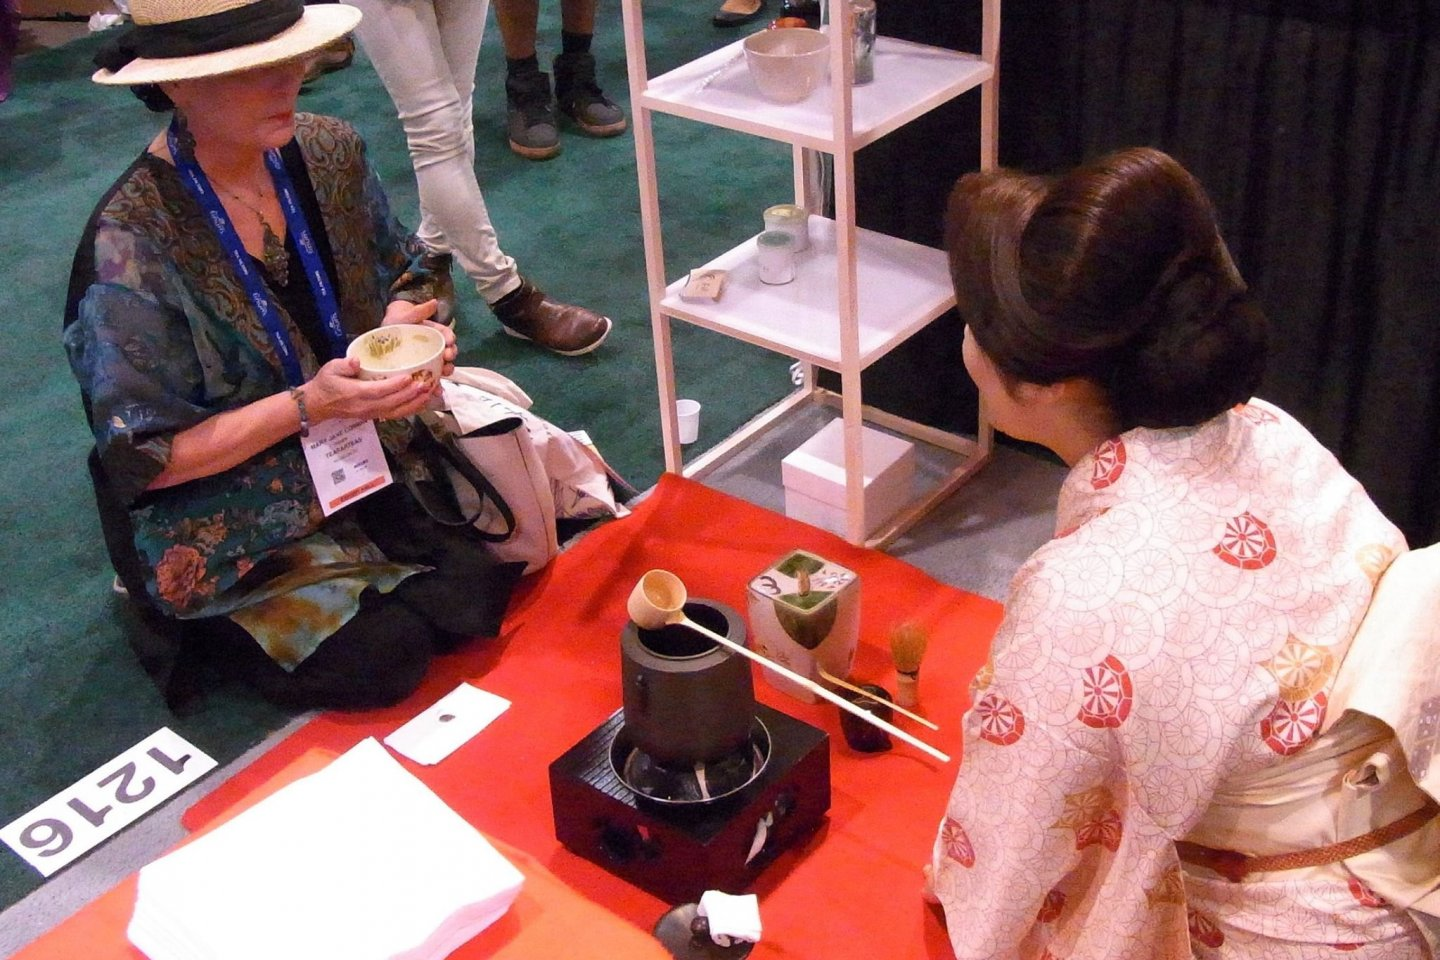 Rie Takeda, founder of Chazen, serving tea to a visitor at the World Tea Expo (U.S.)